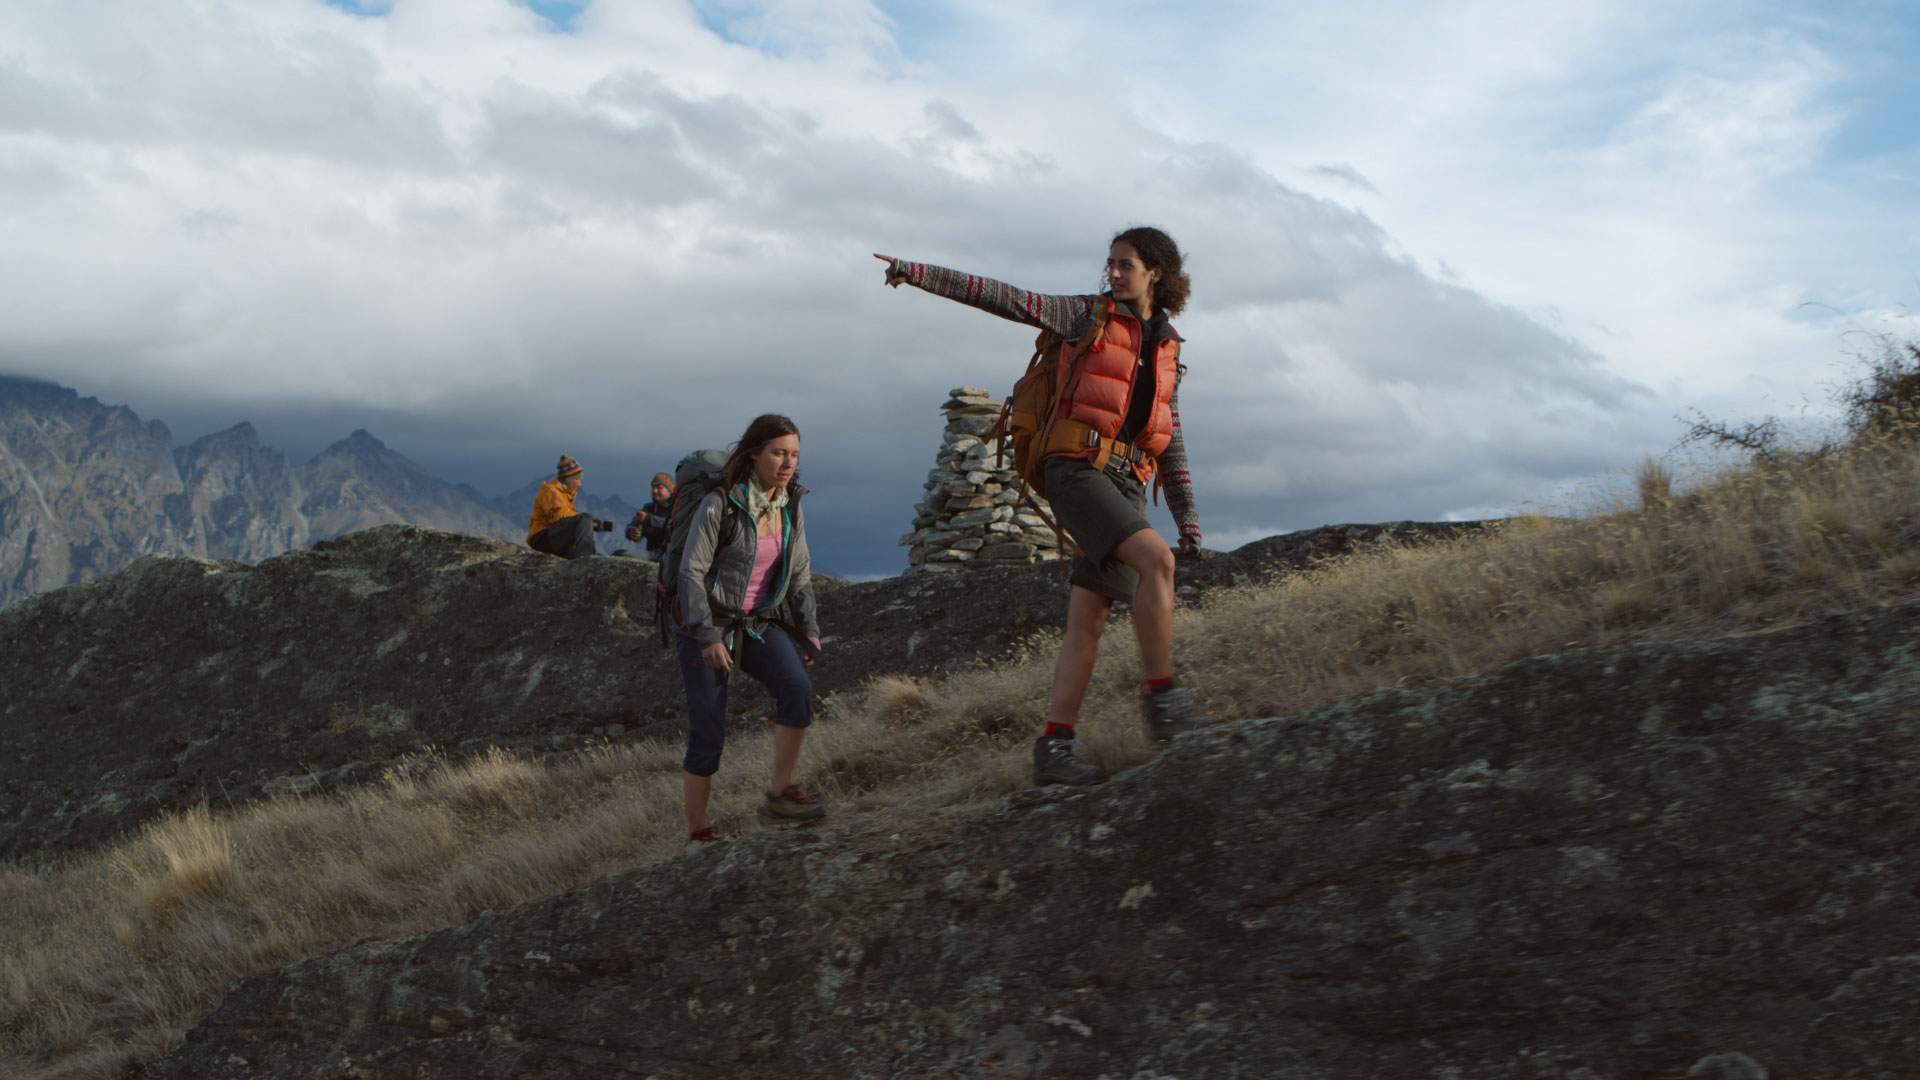 outdoor sky hiking grass person clothing cloud footwear mountain nature woman